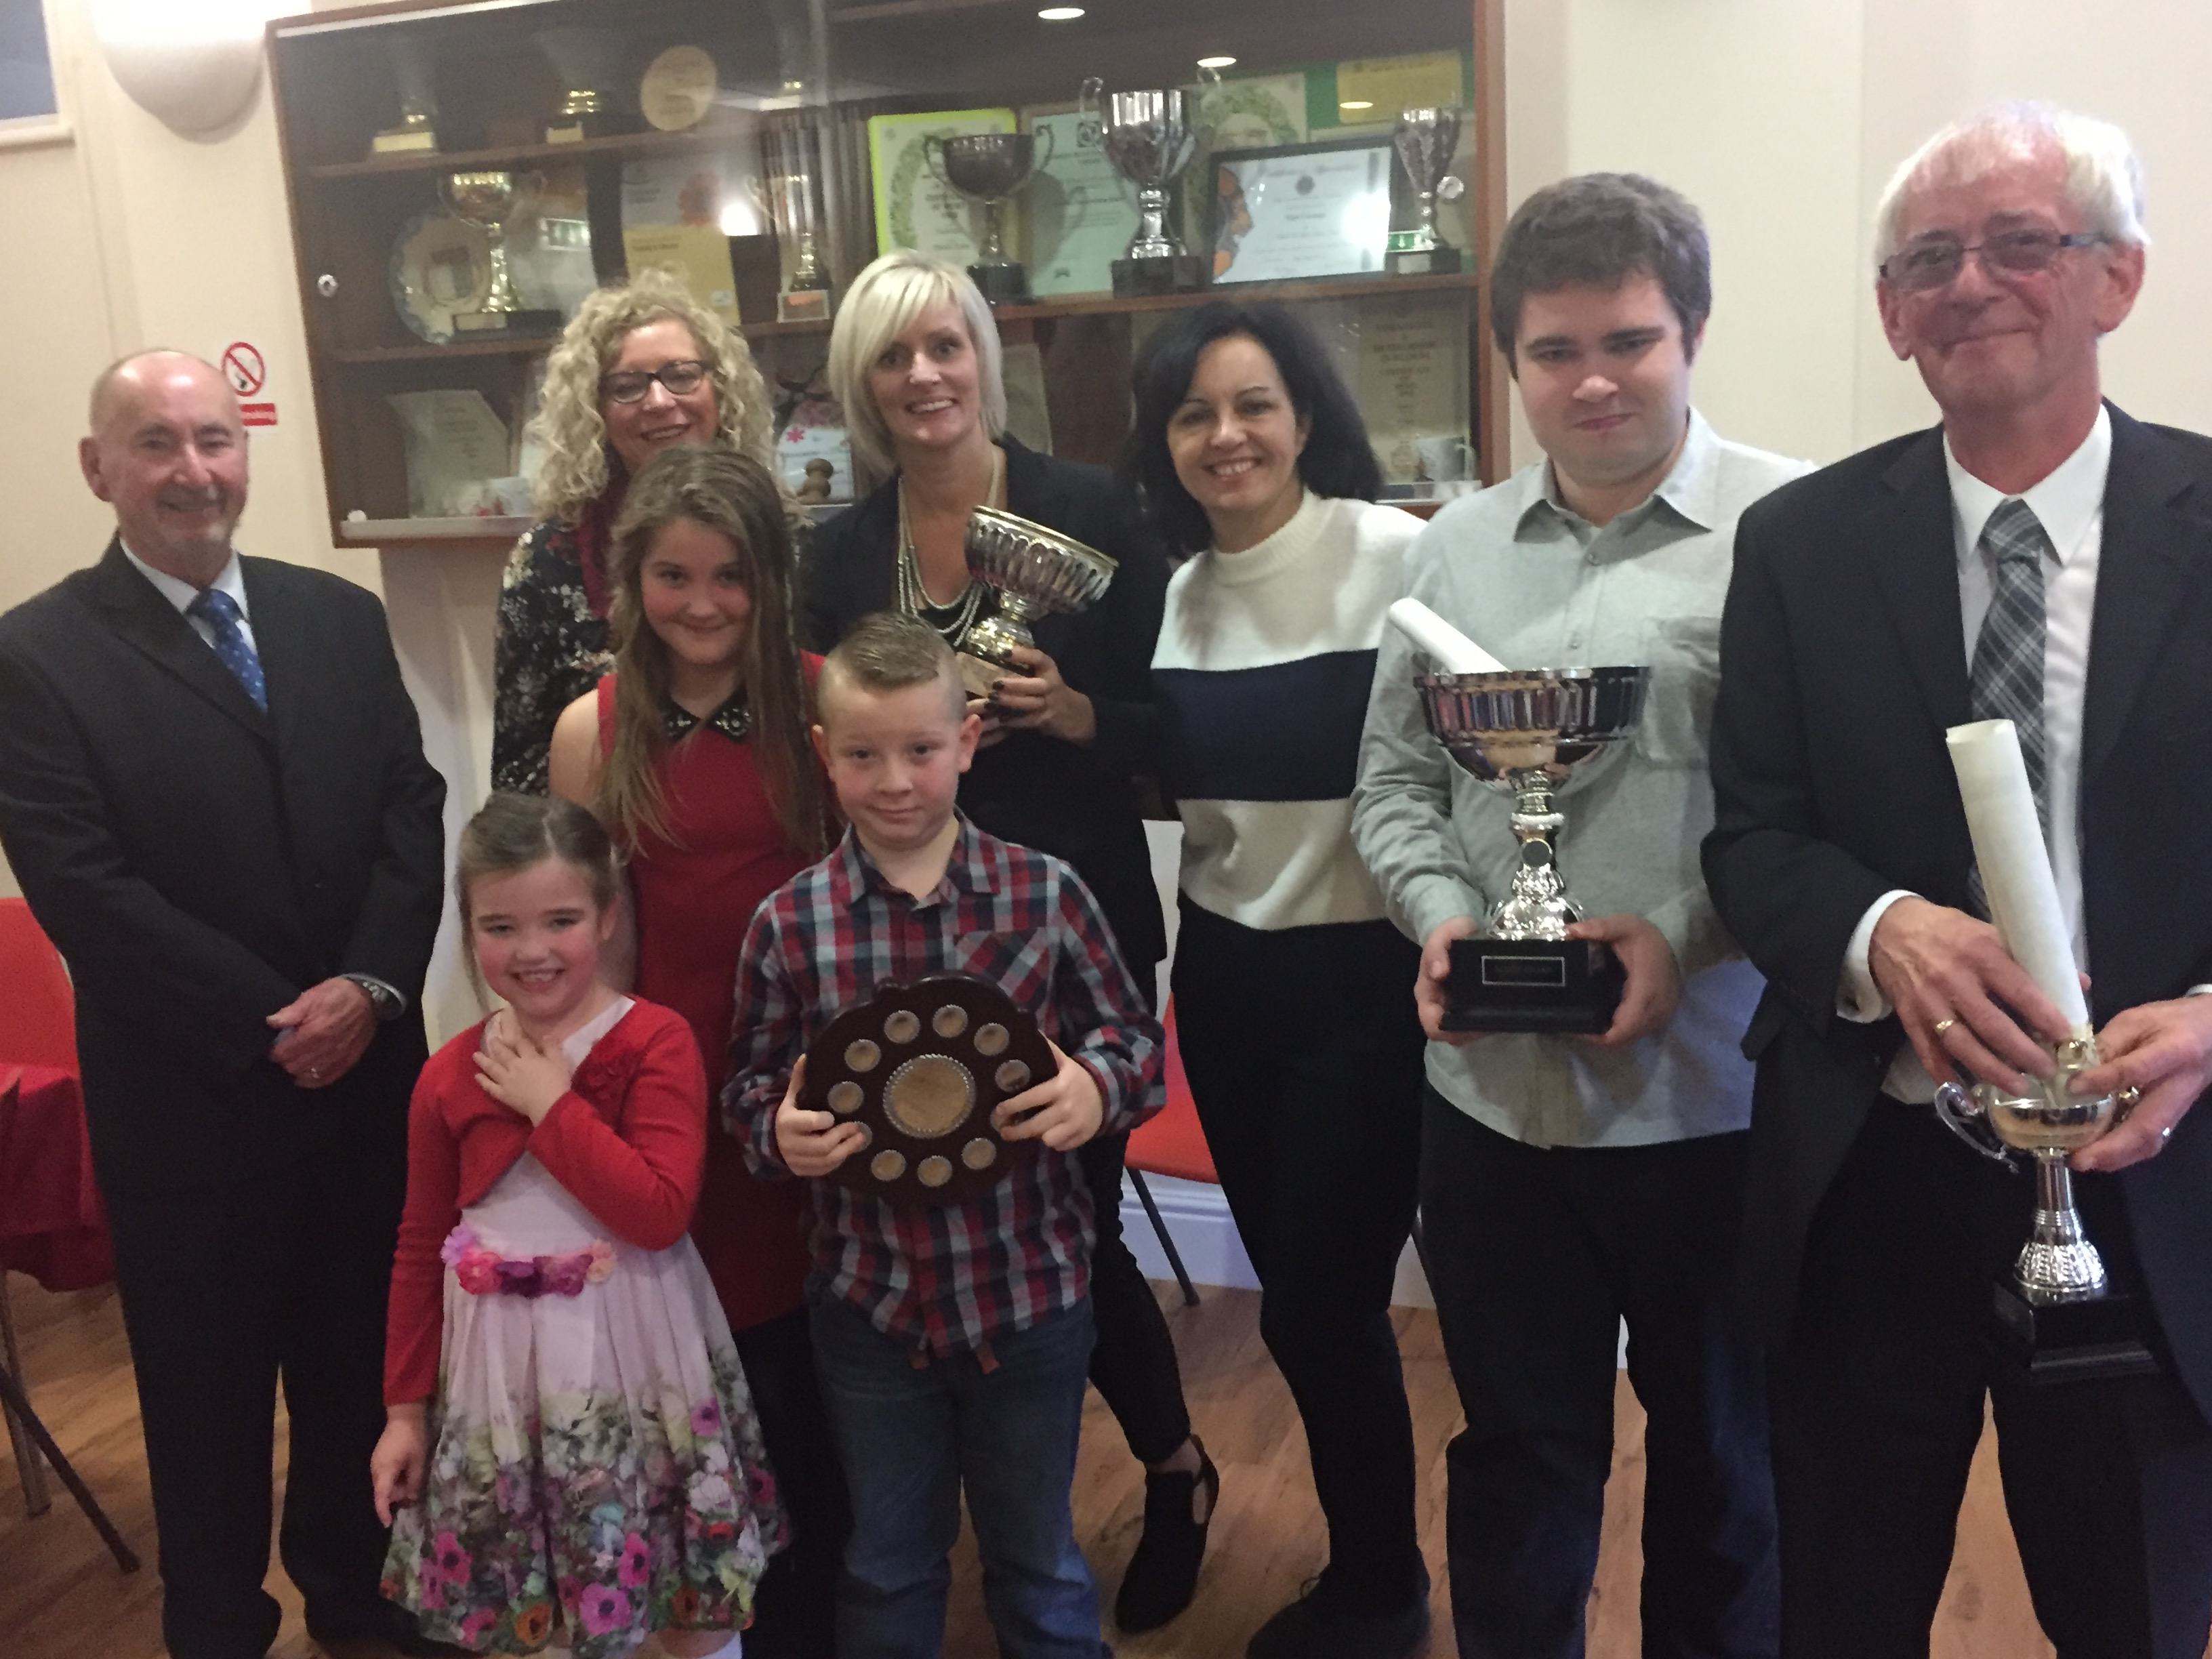 Award_winners_-_Tickhill_awards.JPG